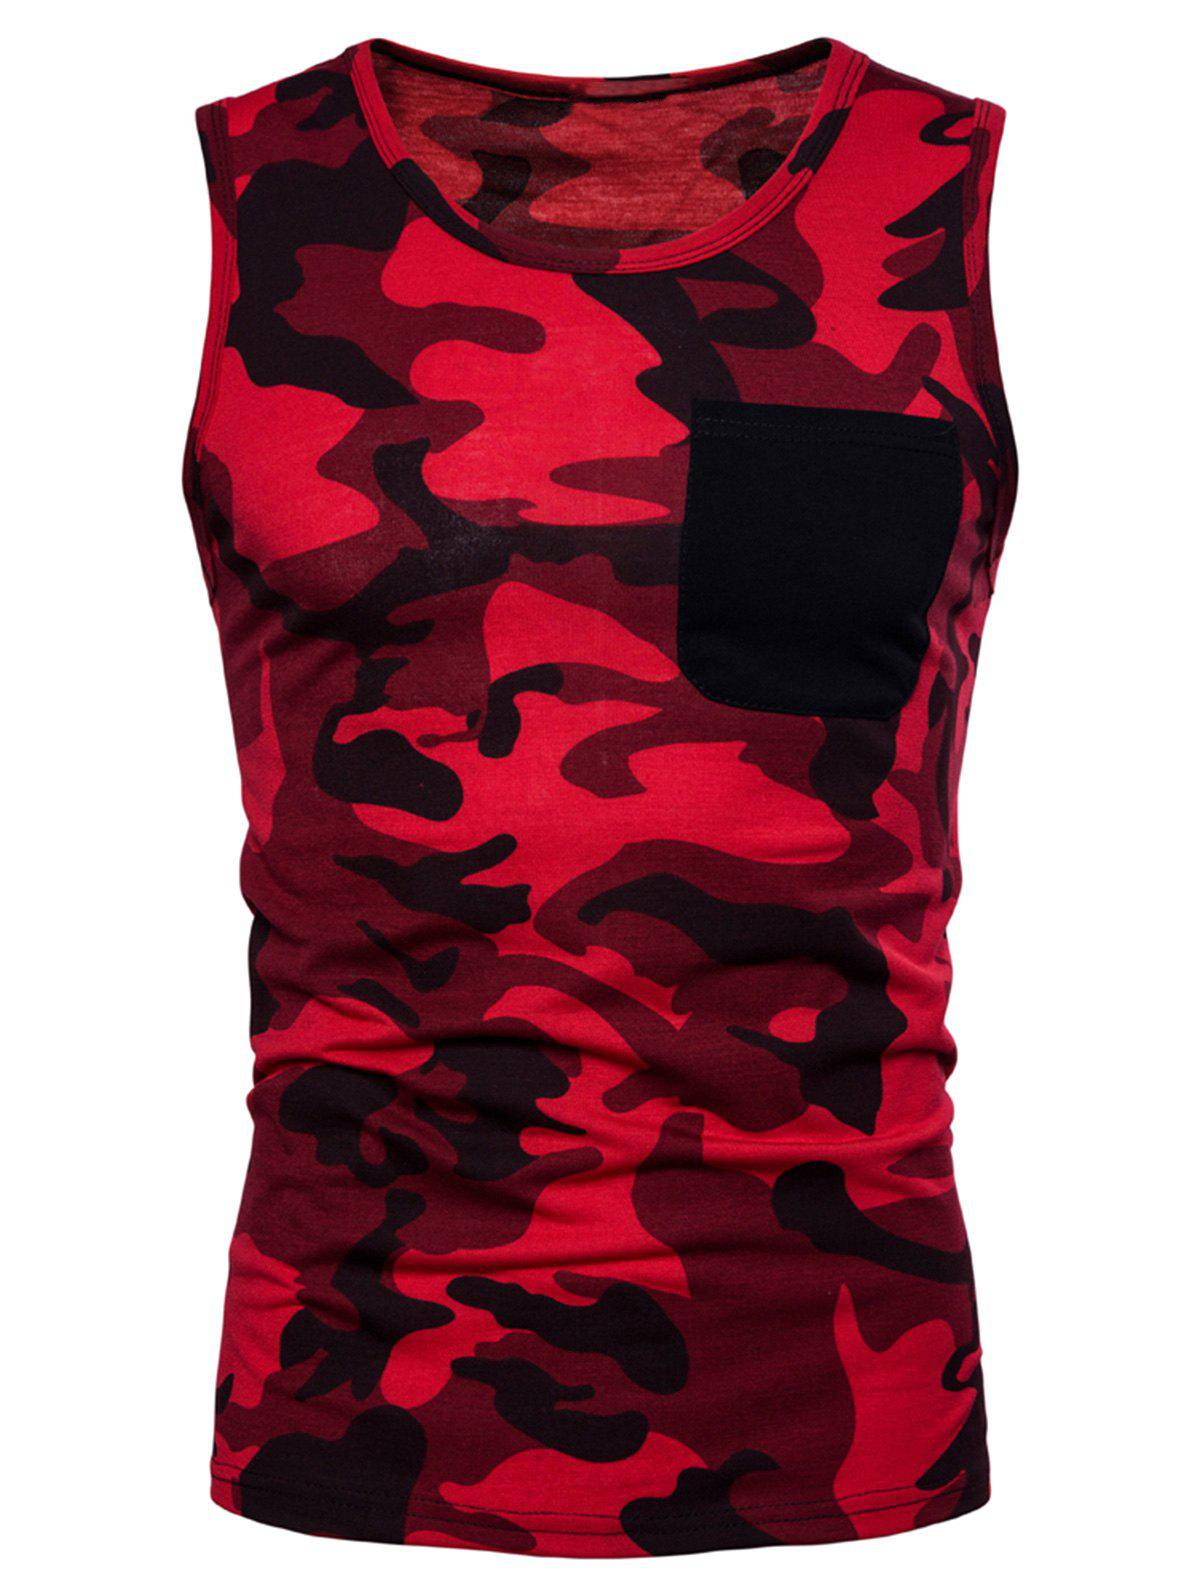 Fashion Pocket Camo Print Tank Top